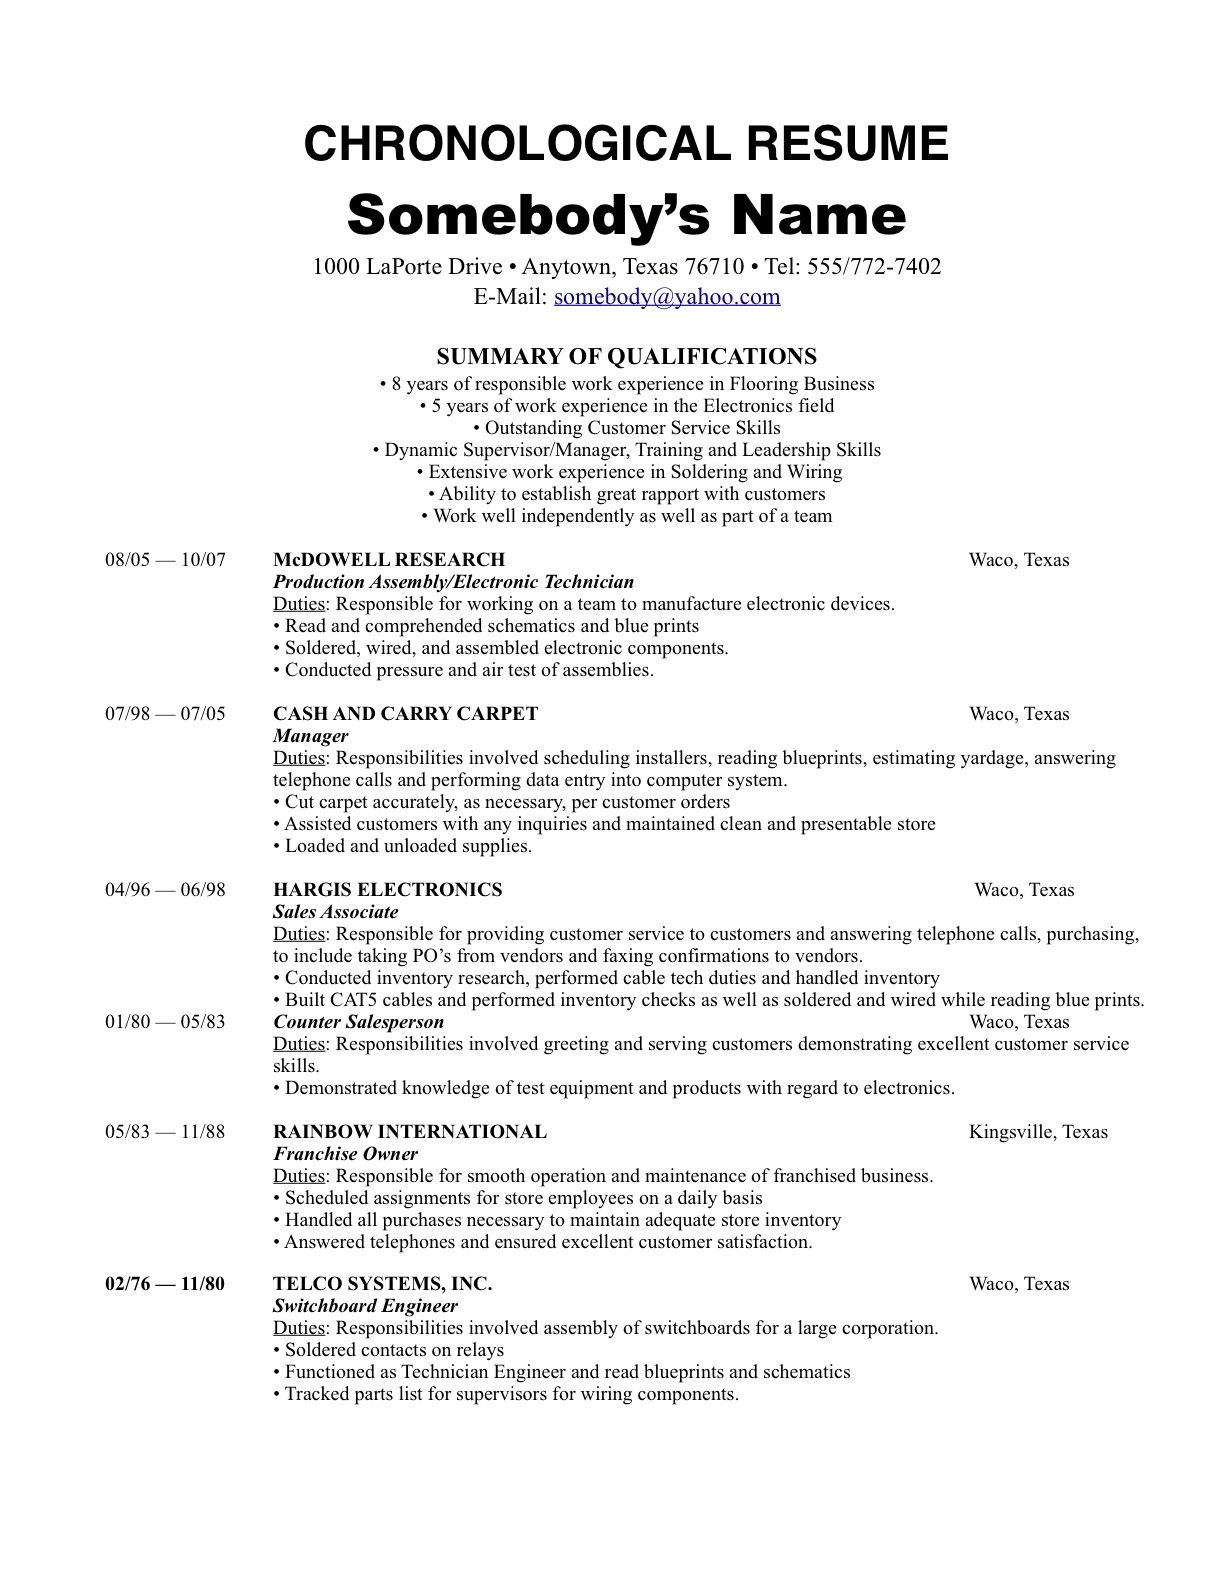 resume Order On Resume chronological order resume example dc0364f86 the most reverse example